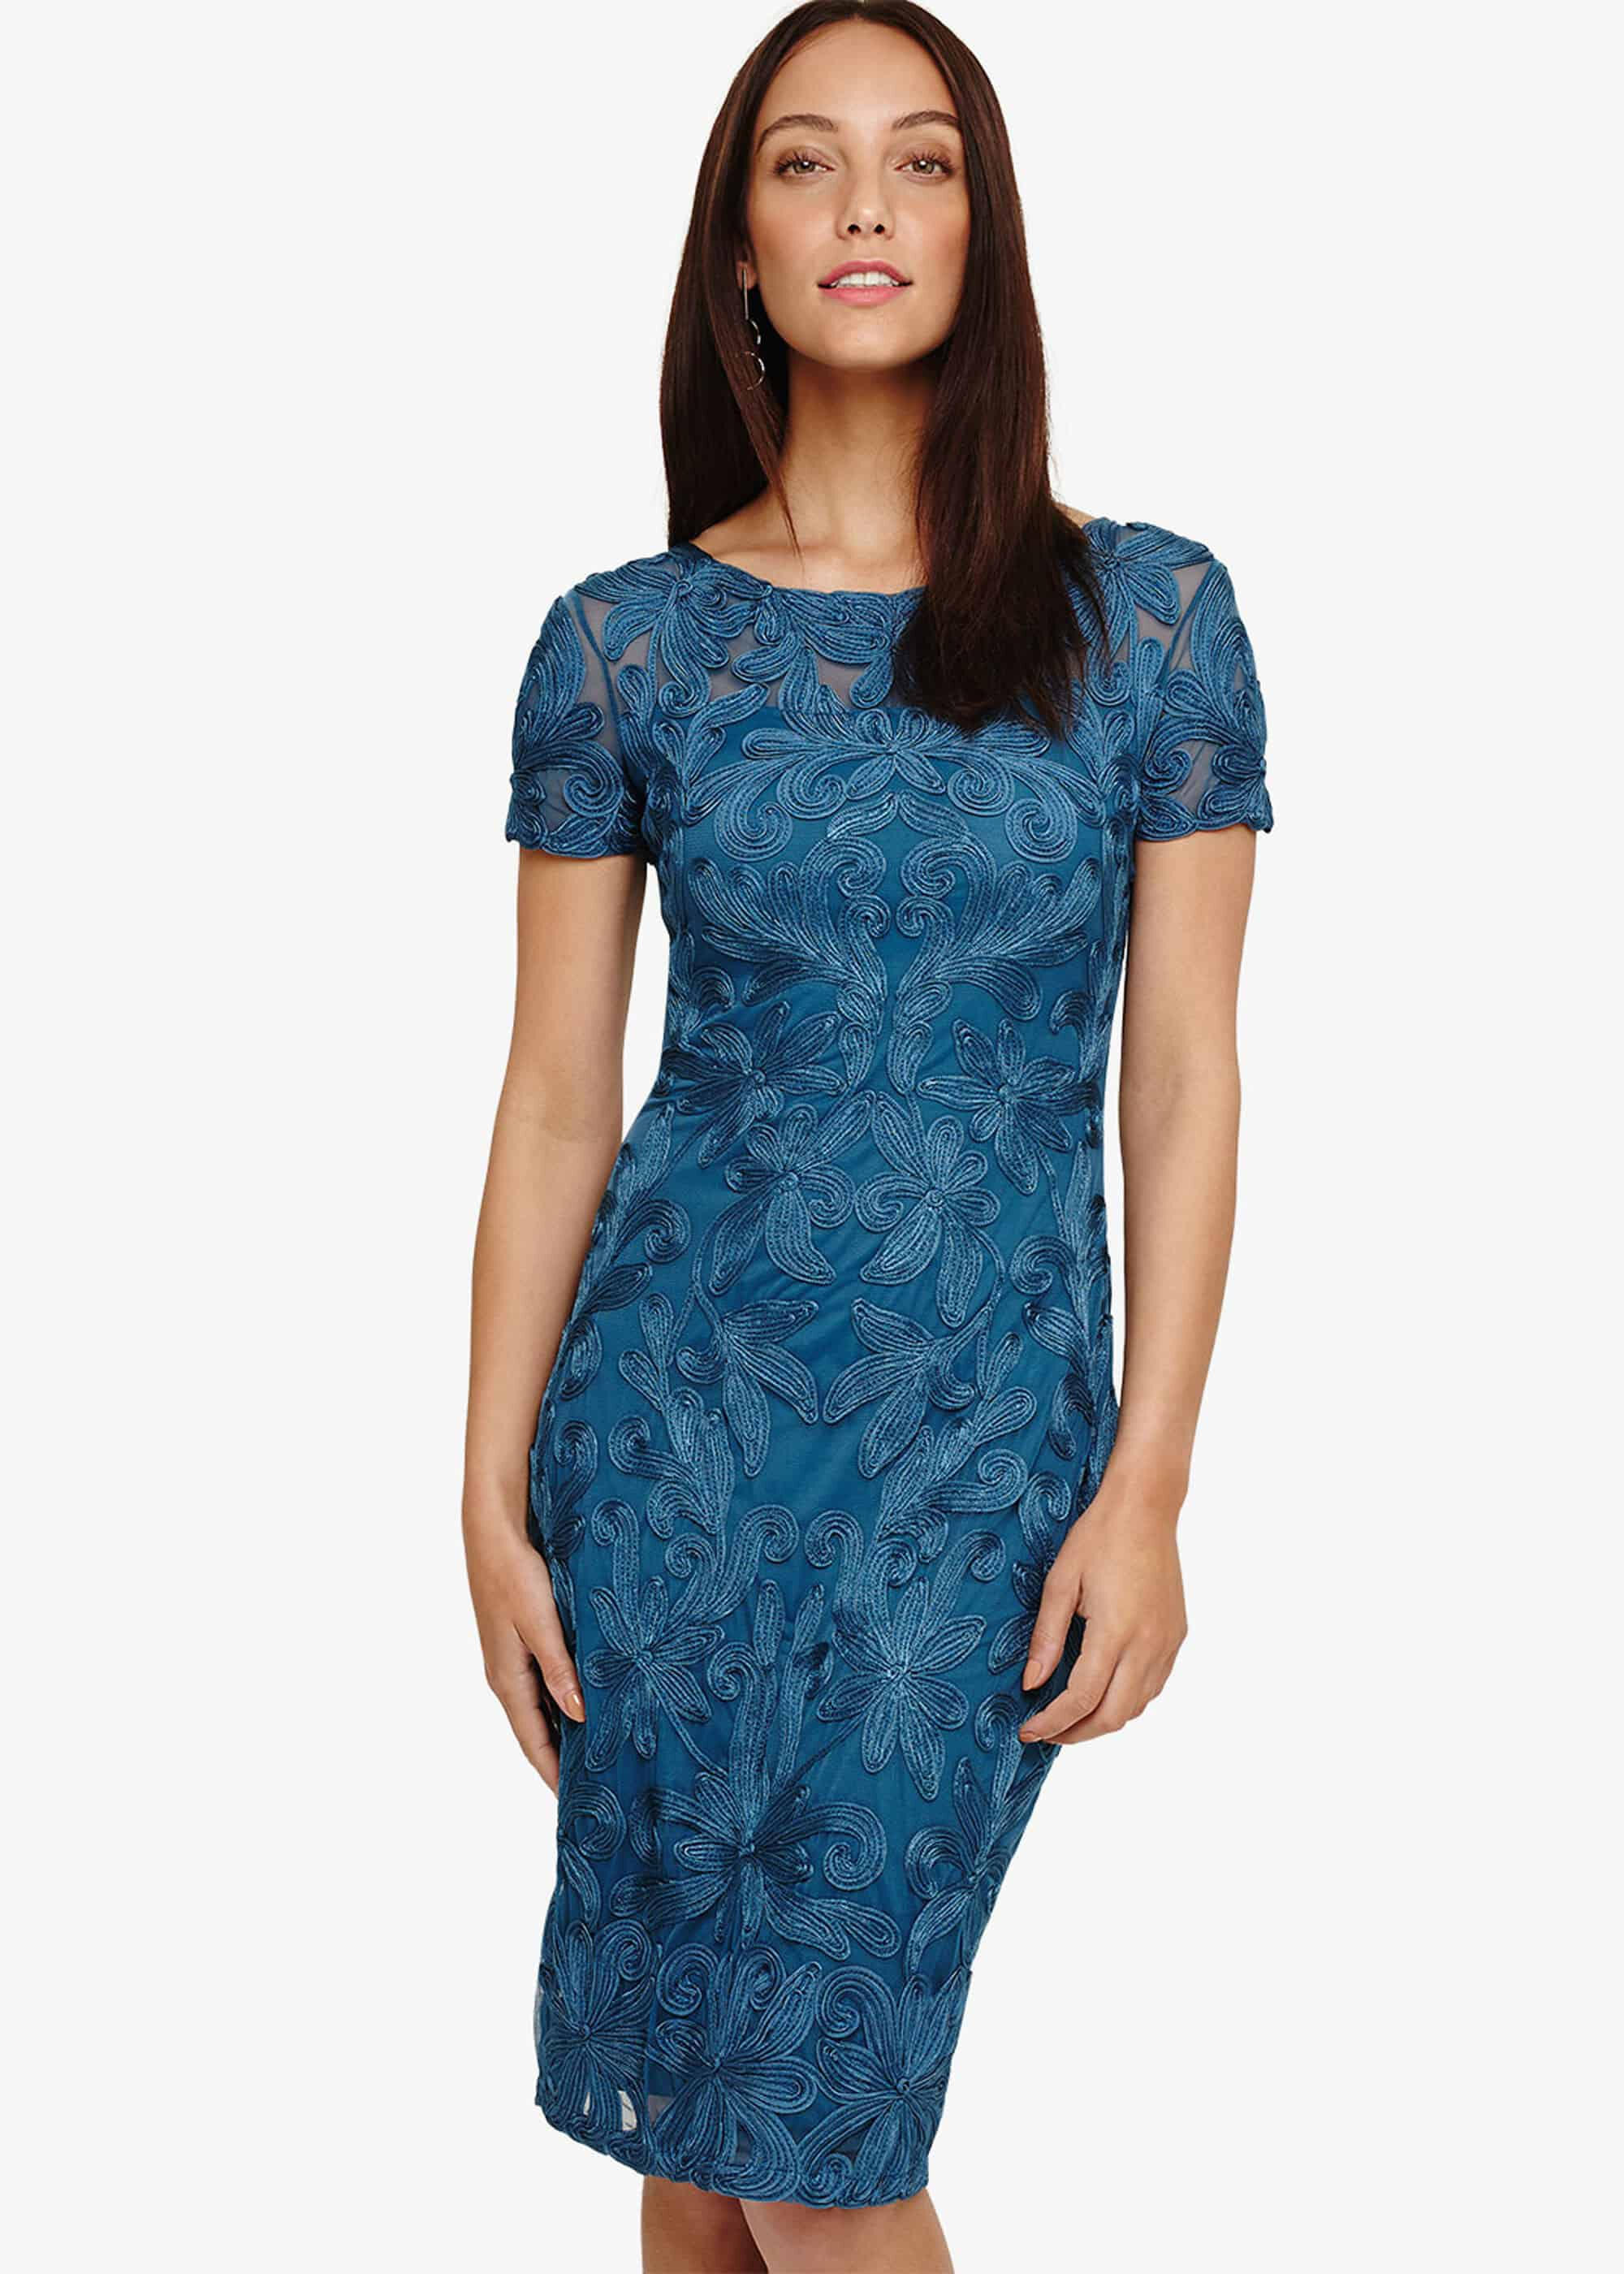 Phase Eight Indra Tapework Lace Dress, Blue, Shift